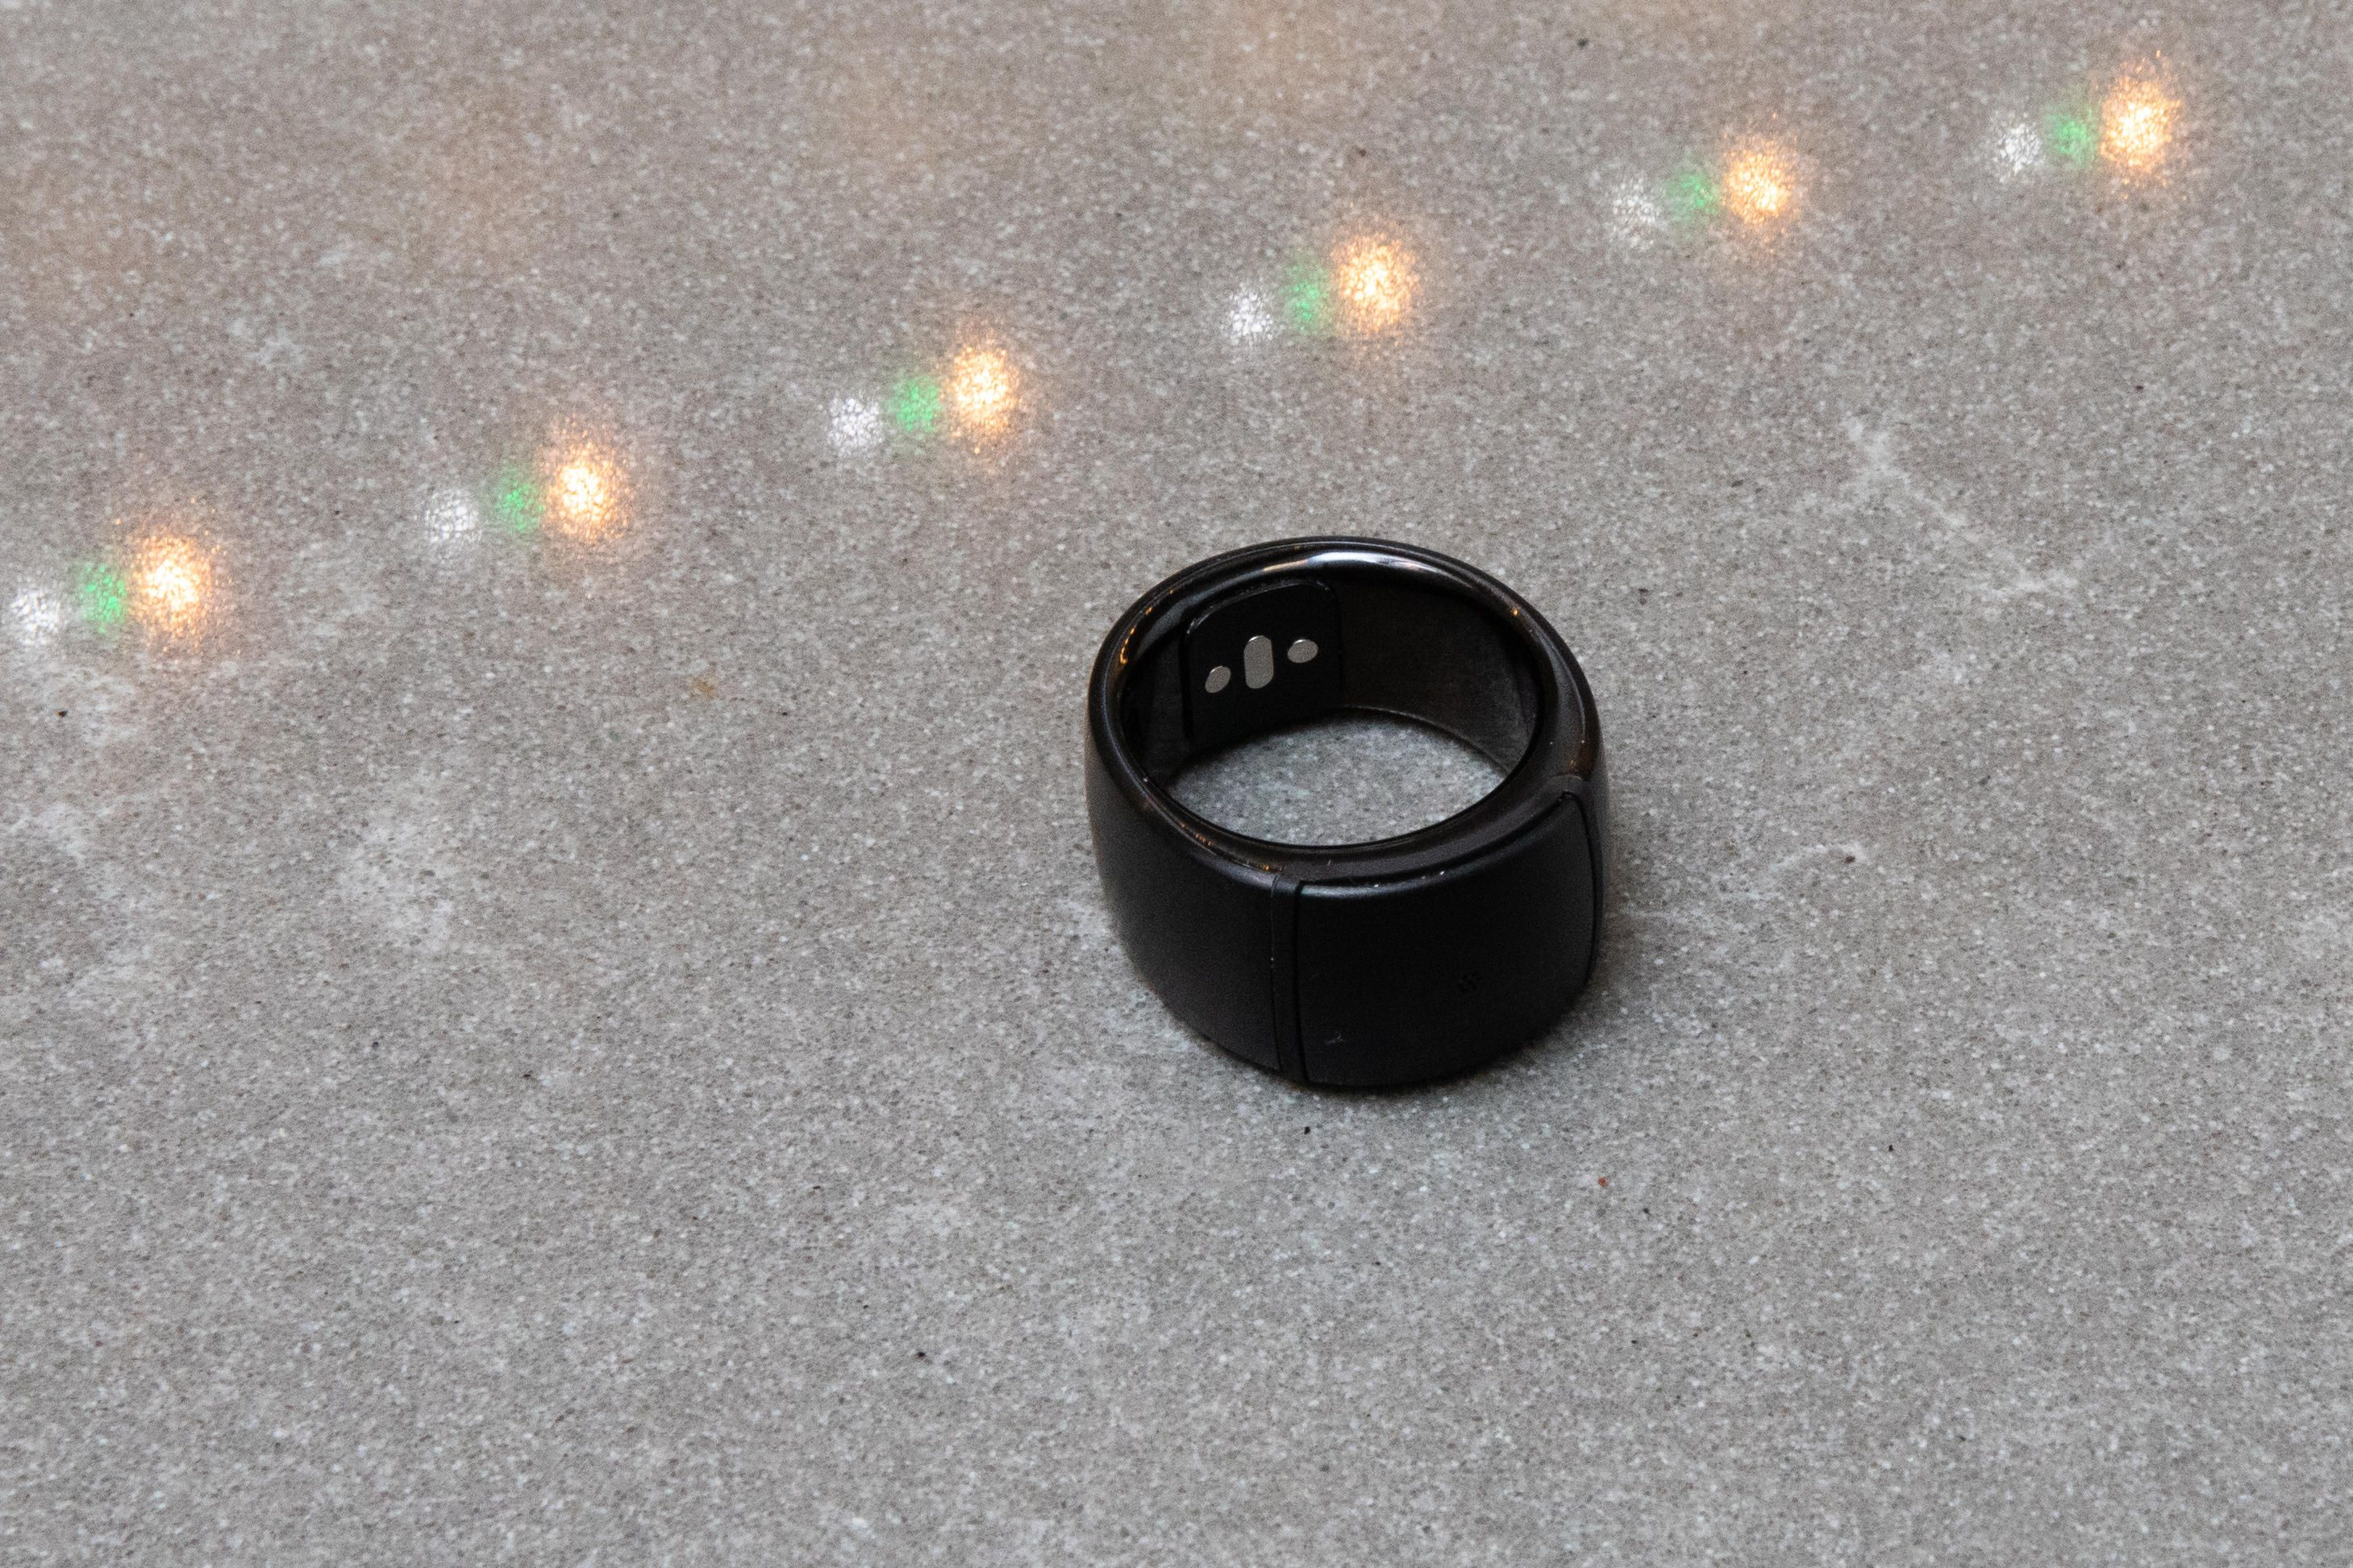 amazon-event-092519-echo-loop-smart-ring0950